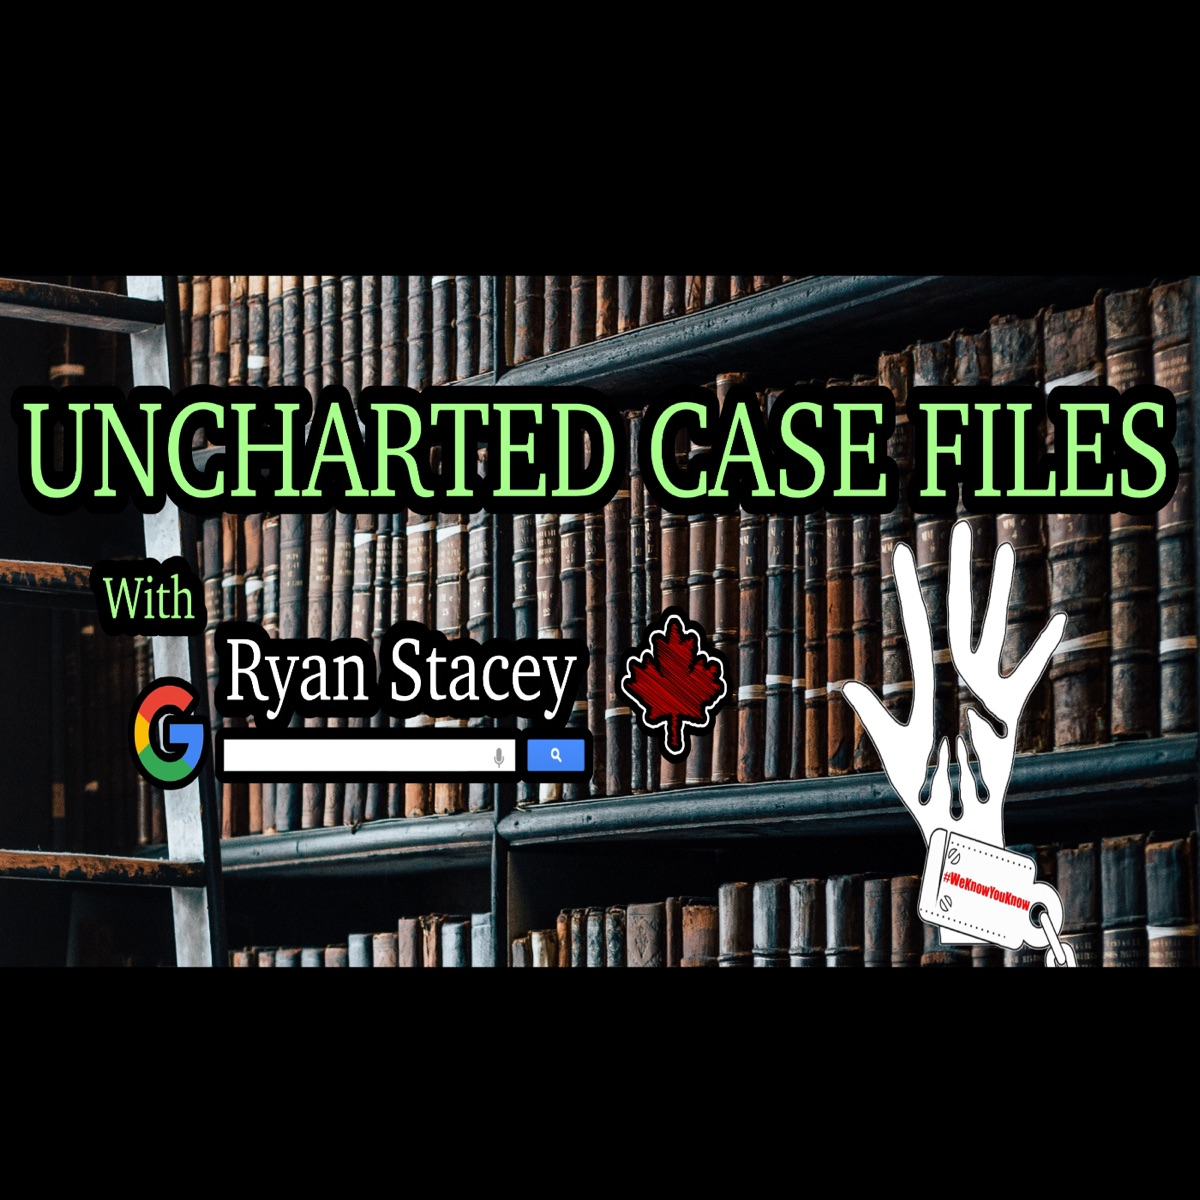 Uncharted Case Files